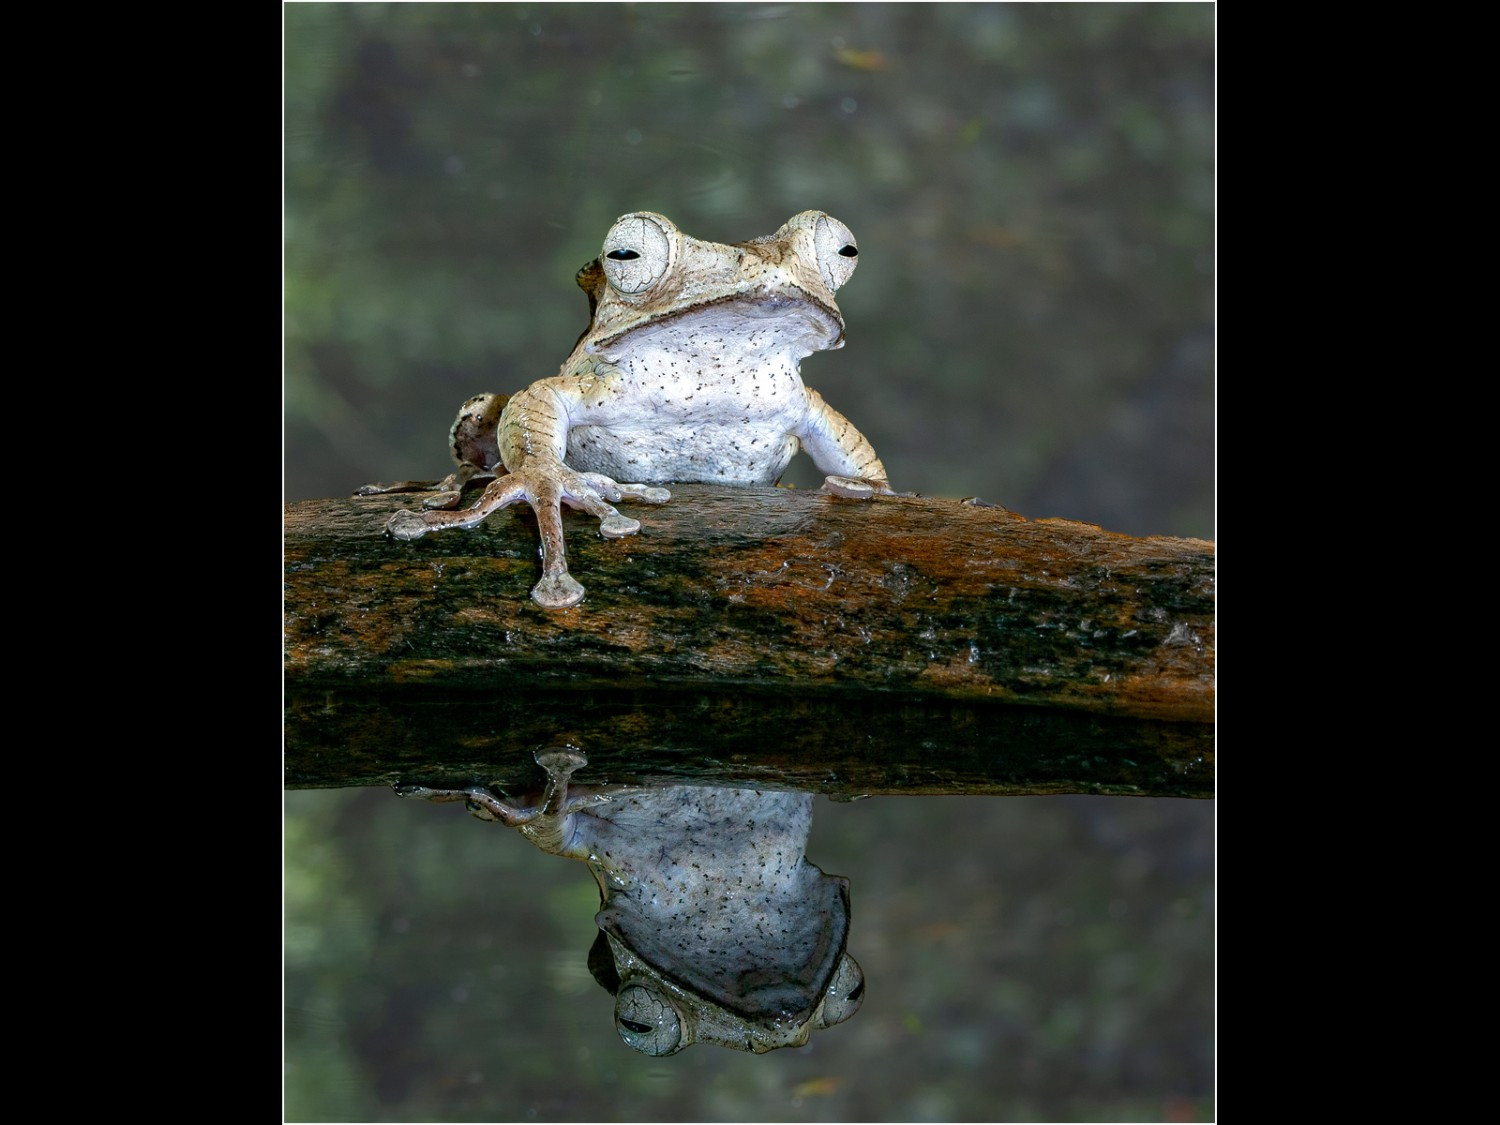 Golden Tree Frog with Reflection